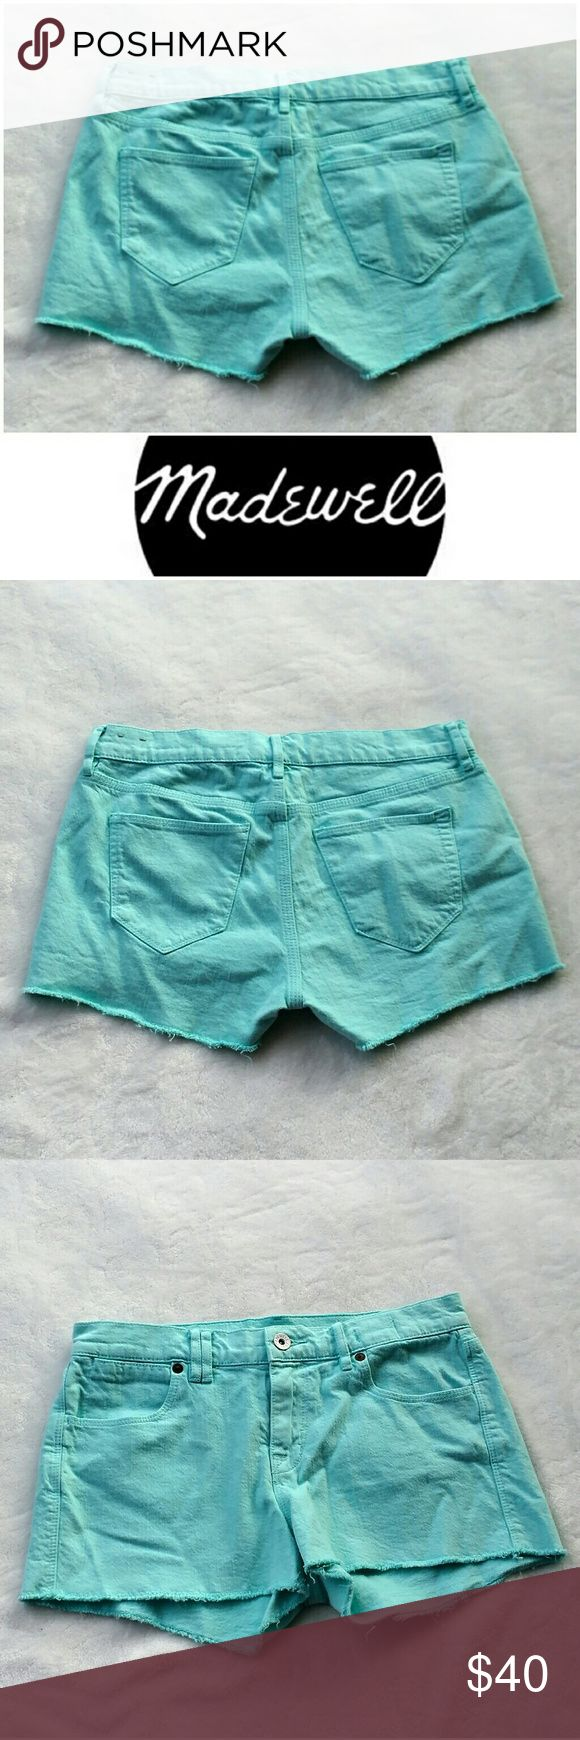 """Madewell turquoise teal shorts Adorable, bright and fun shorts from Madewell.   Like new!   2"""" inseam. Size 26.  Let me know if you have any questions! Open to offers and bundle discount available. Madewell Shorts"""